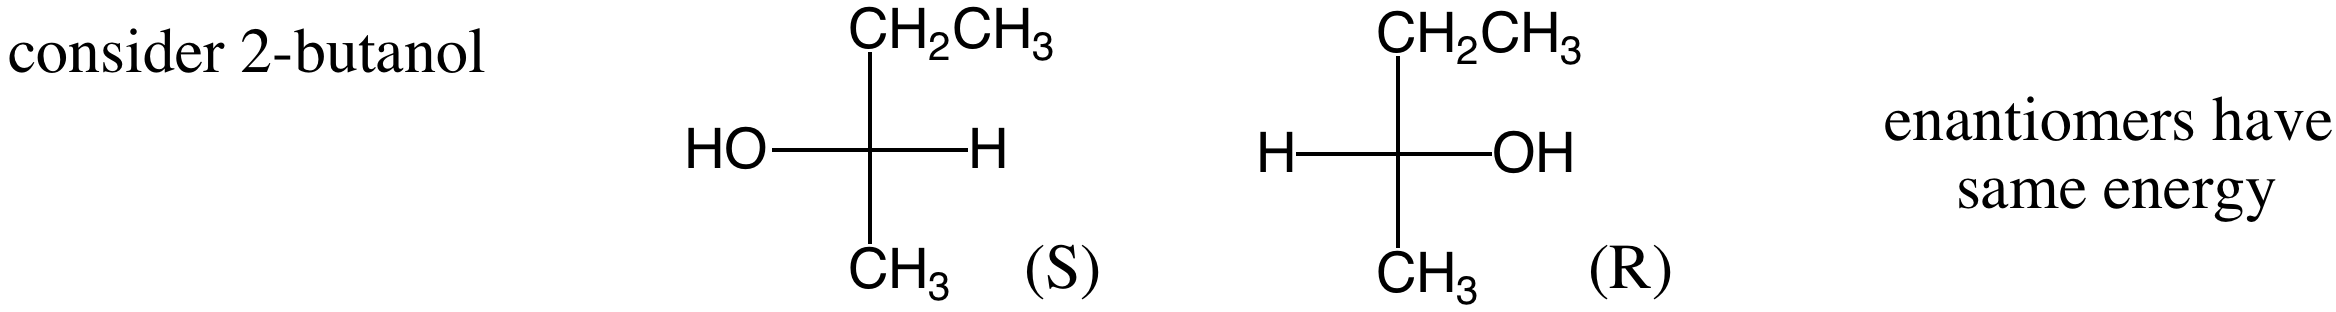 The two diastereomers can now be separated due